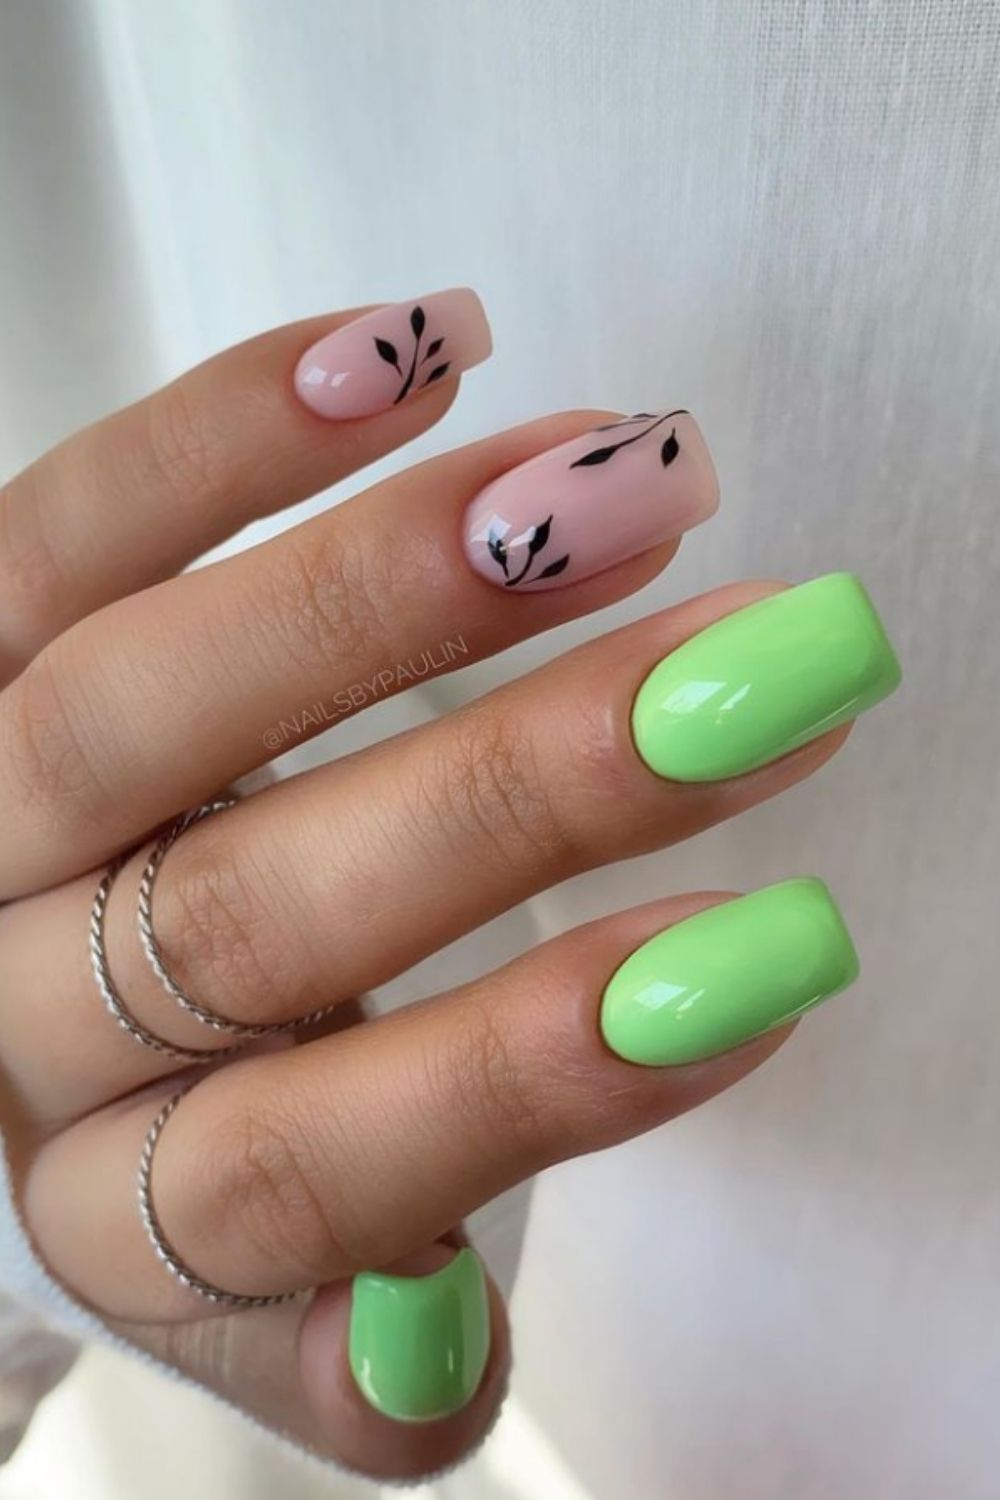 Short Nail Designs for Summer Nails Art in 2021